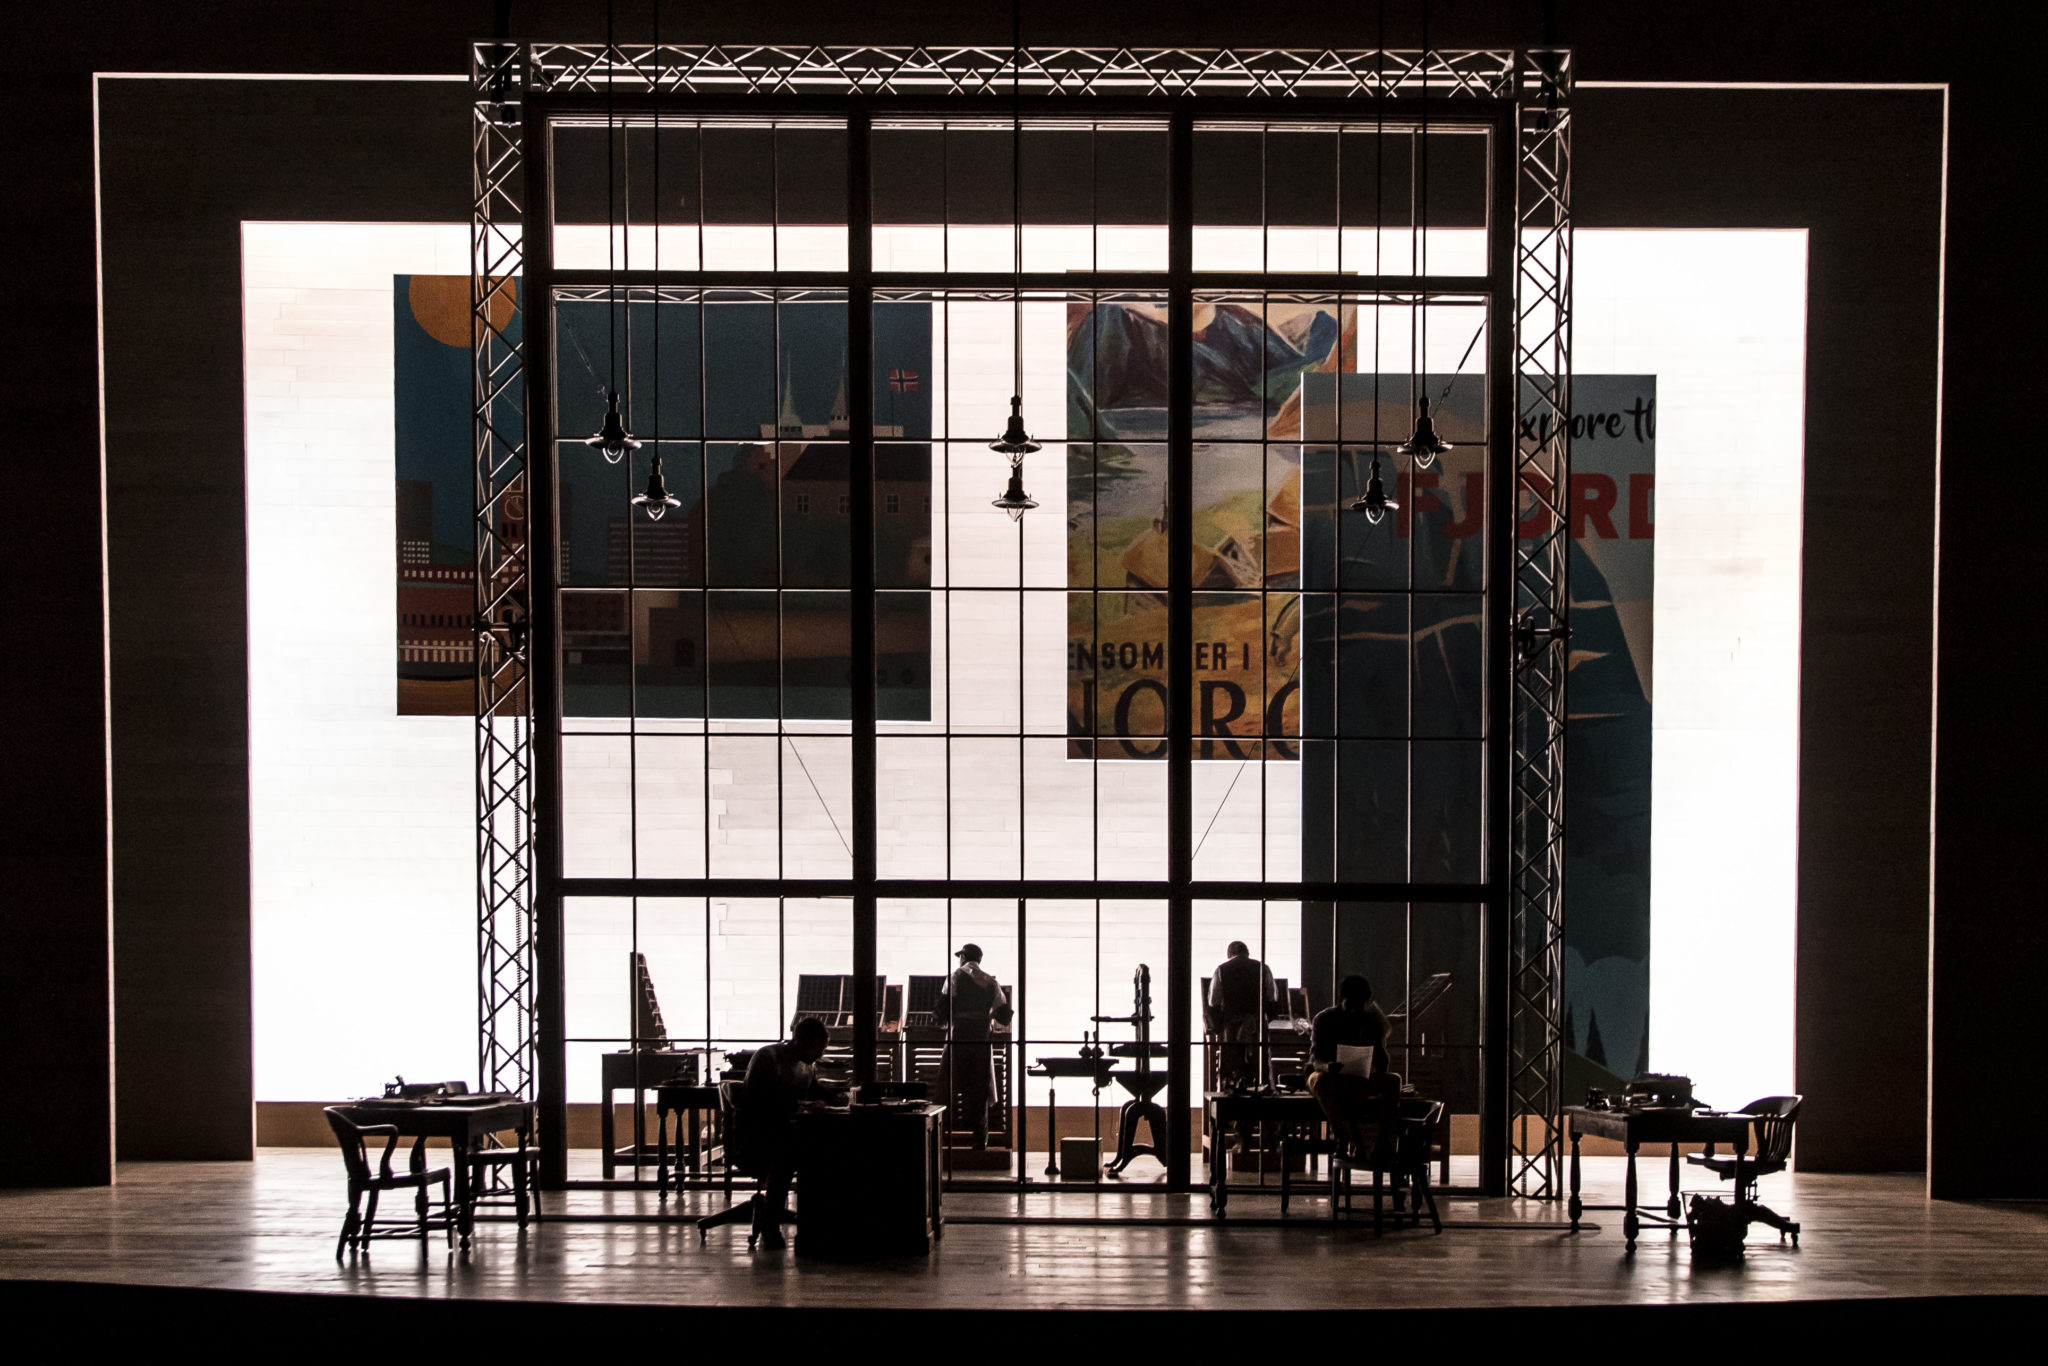 Goodman Theatre Presents AN ENEMY OF THE PEOPLE